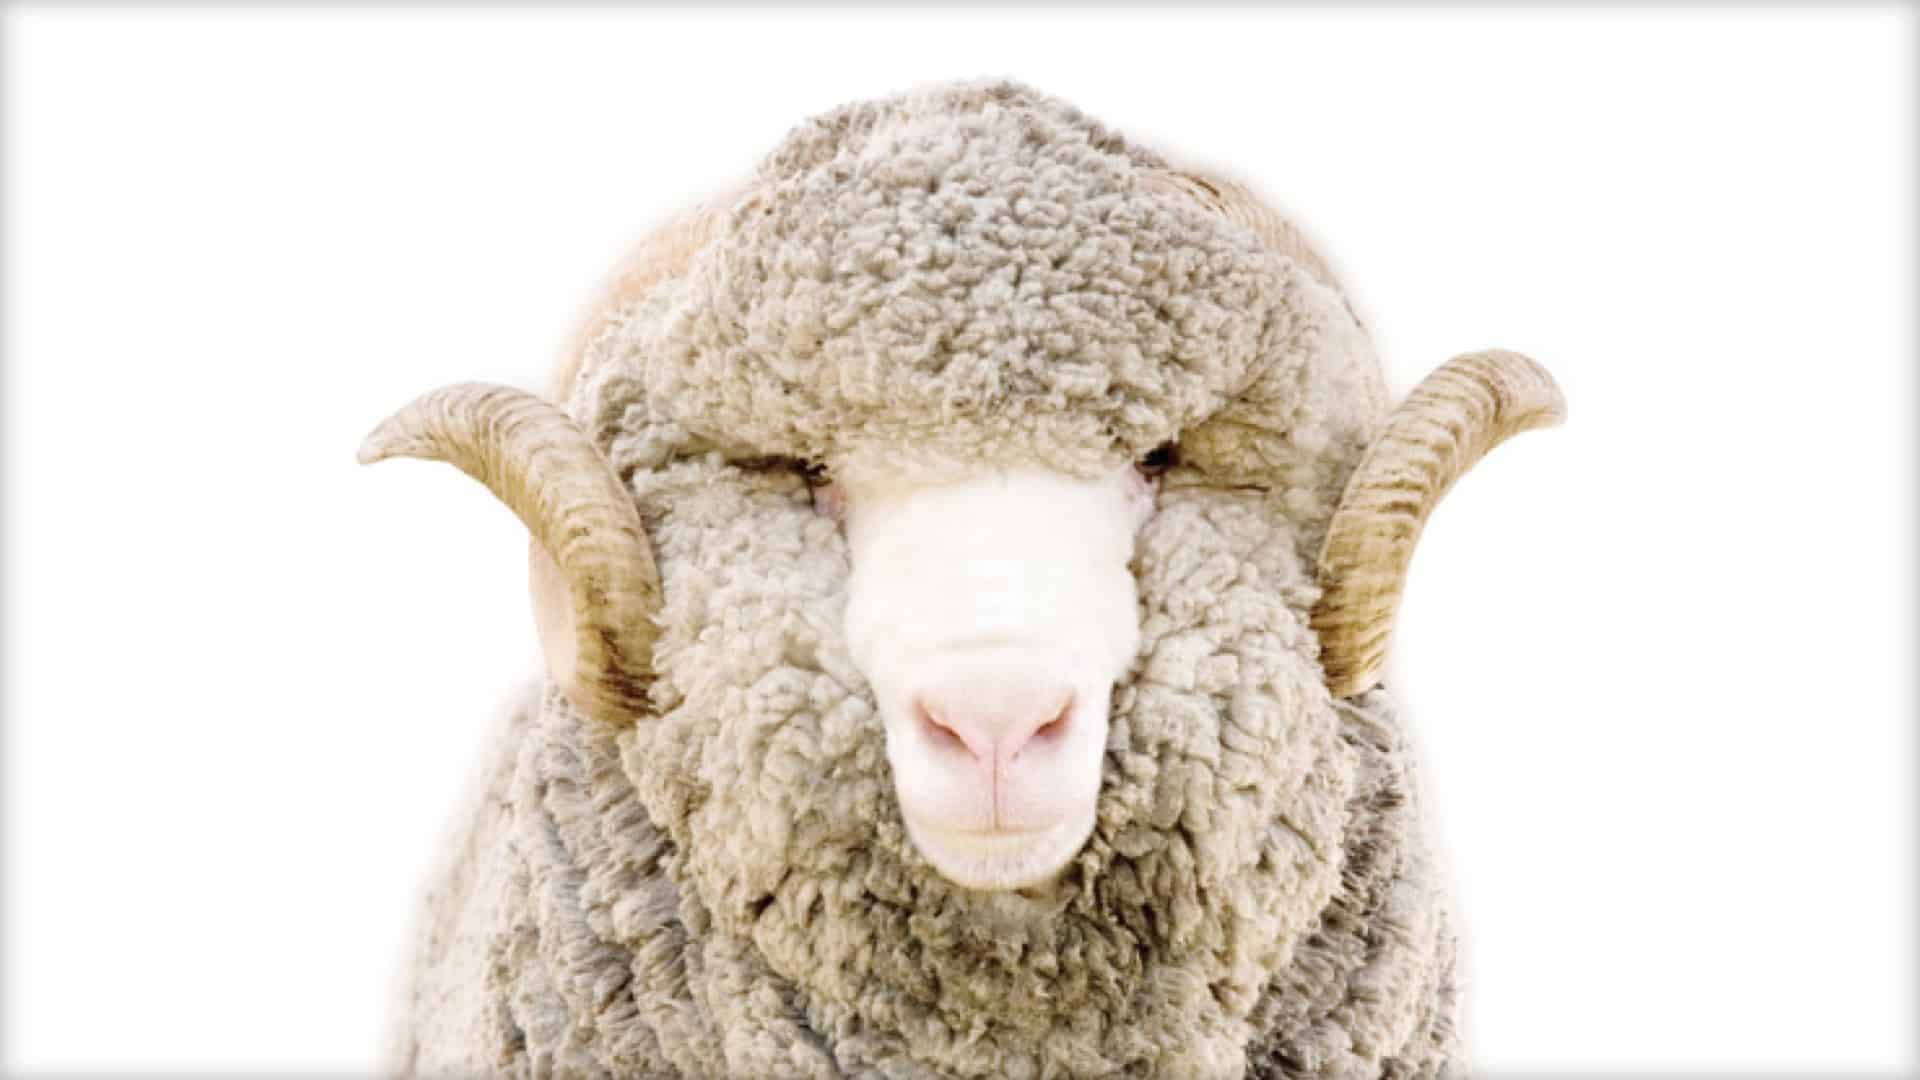 The image shows a close-up of a gorgeous curly horned ram.